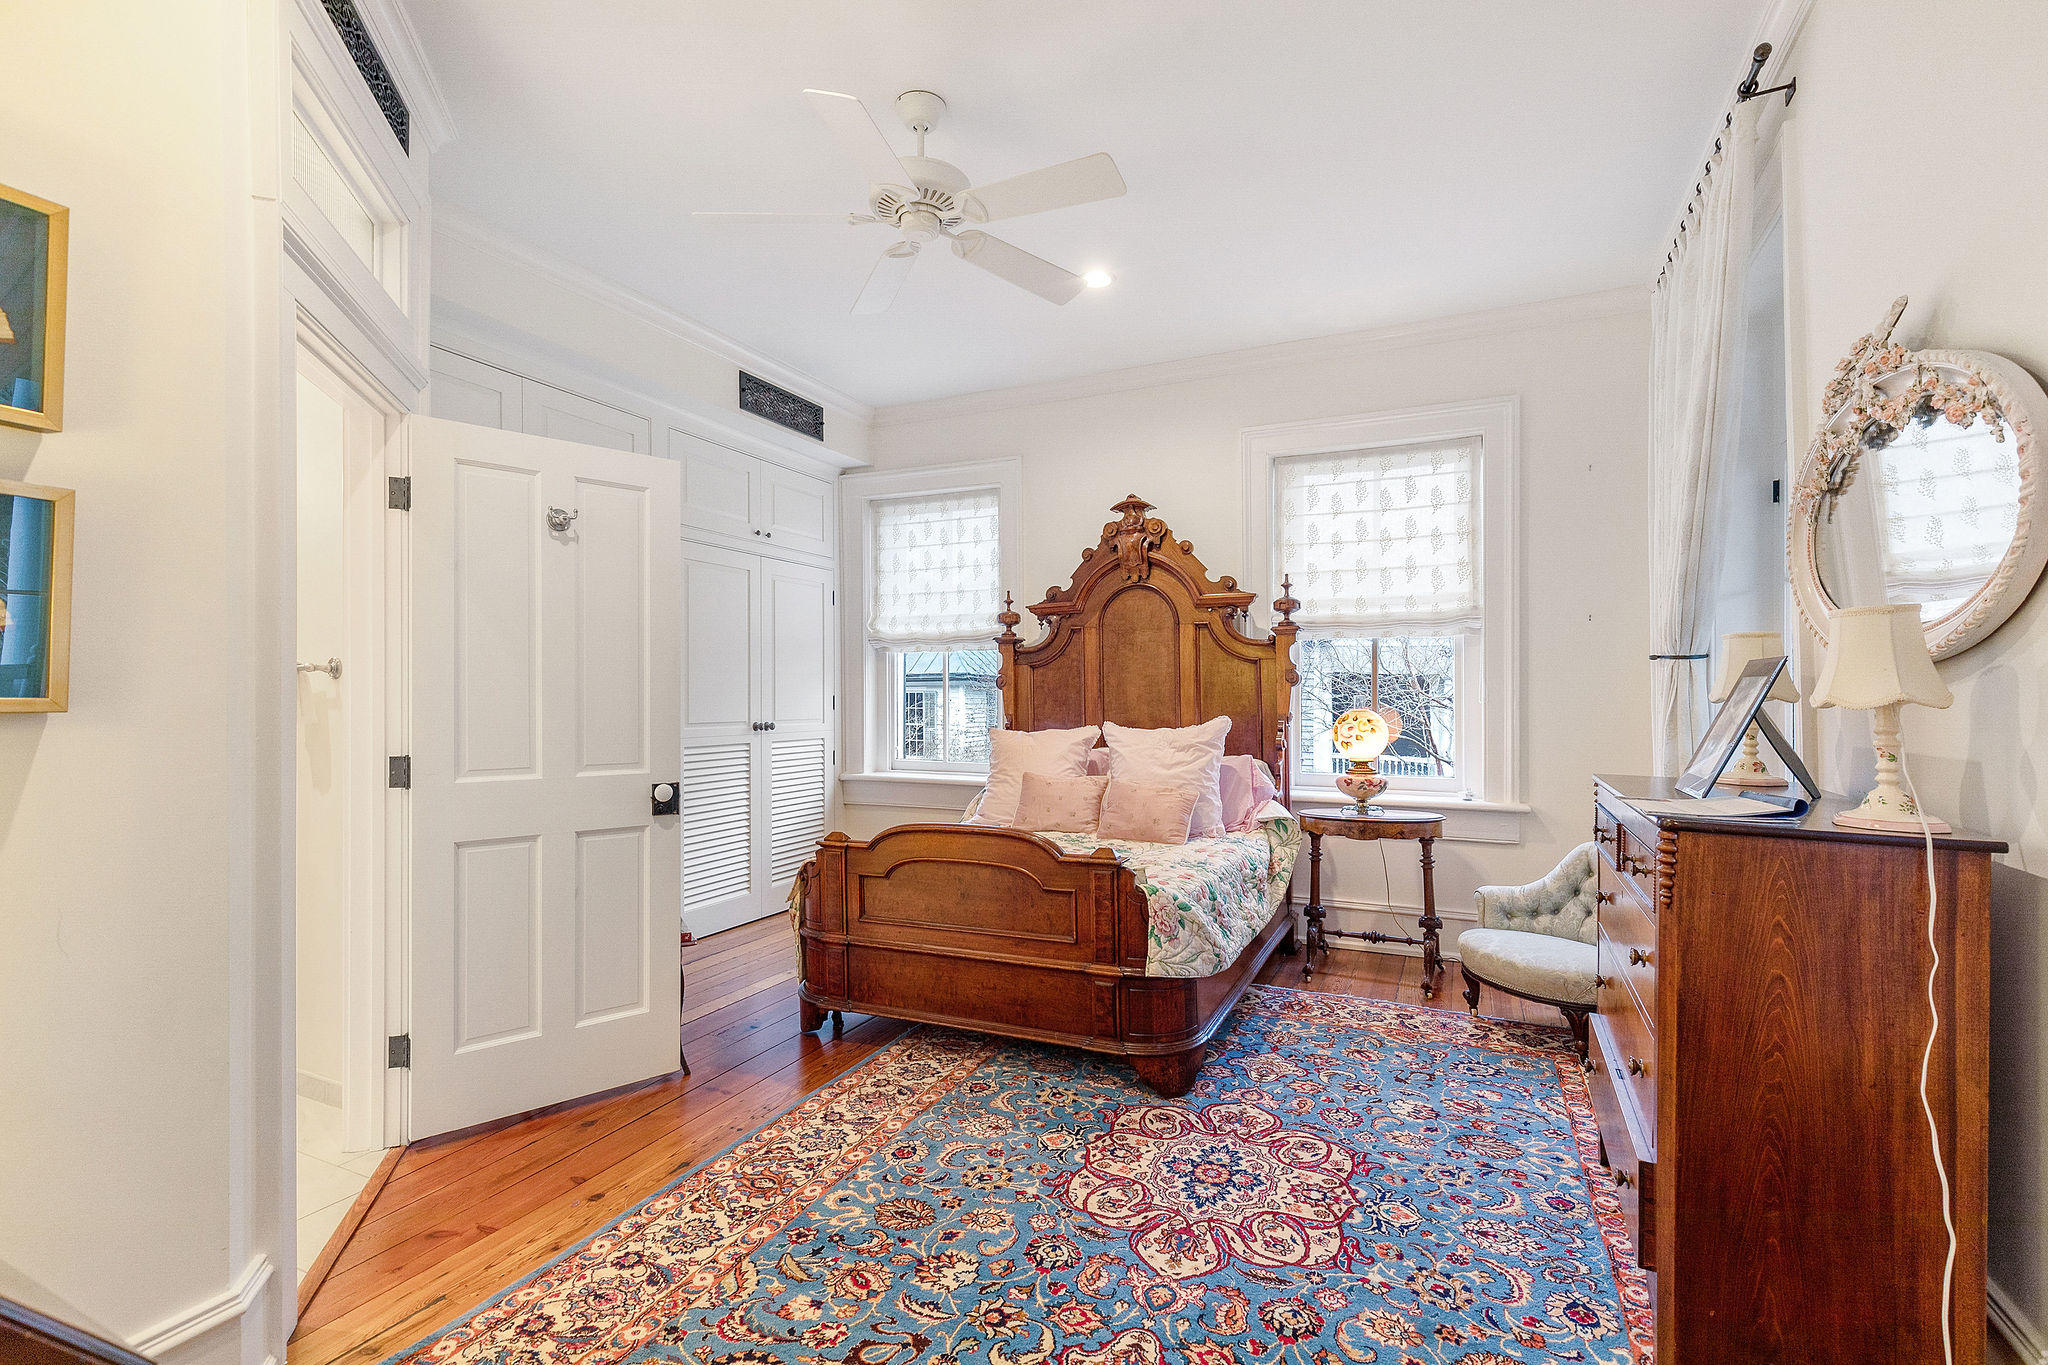 South of Broad Homes For Sale - 53 Church, Charleston, SC - 55